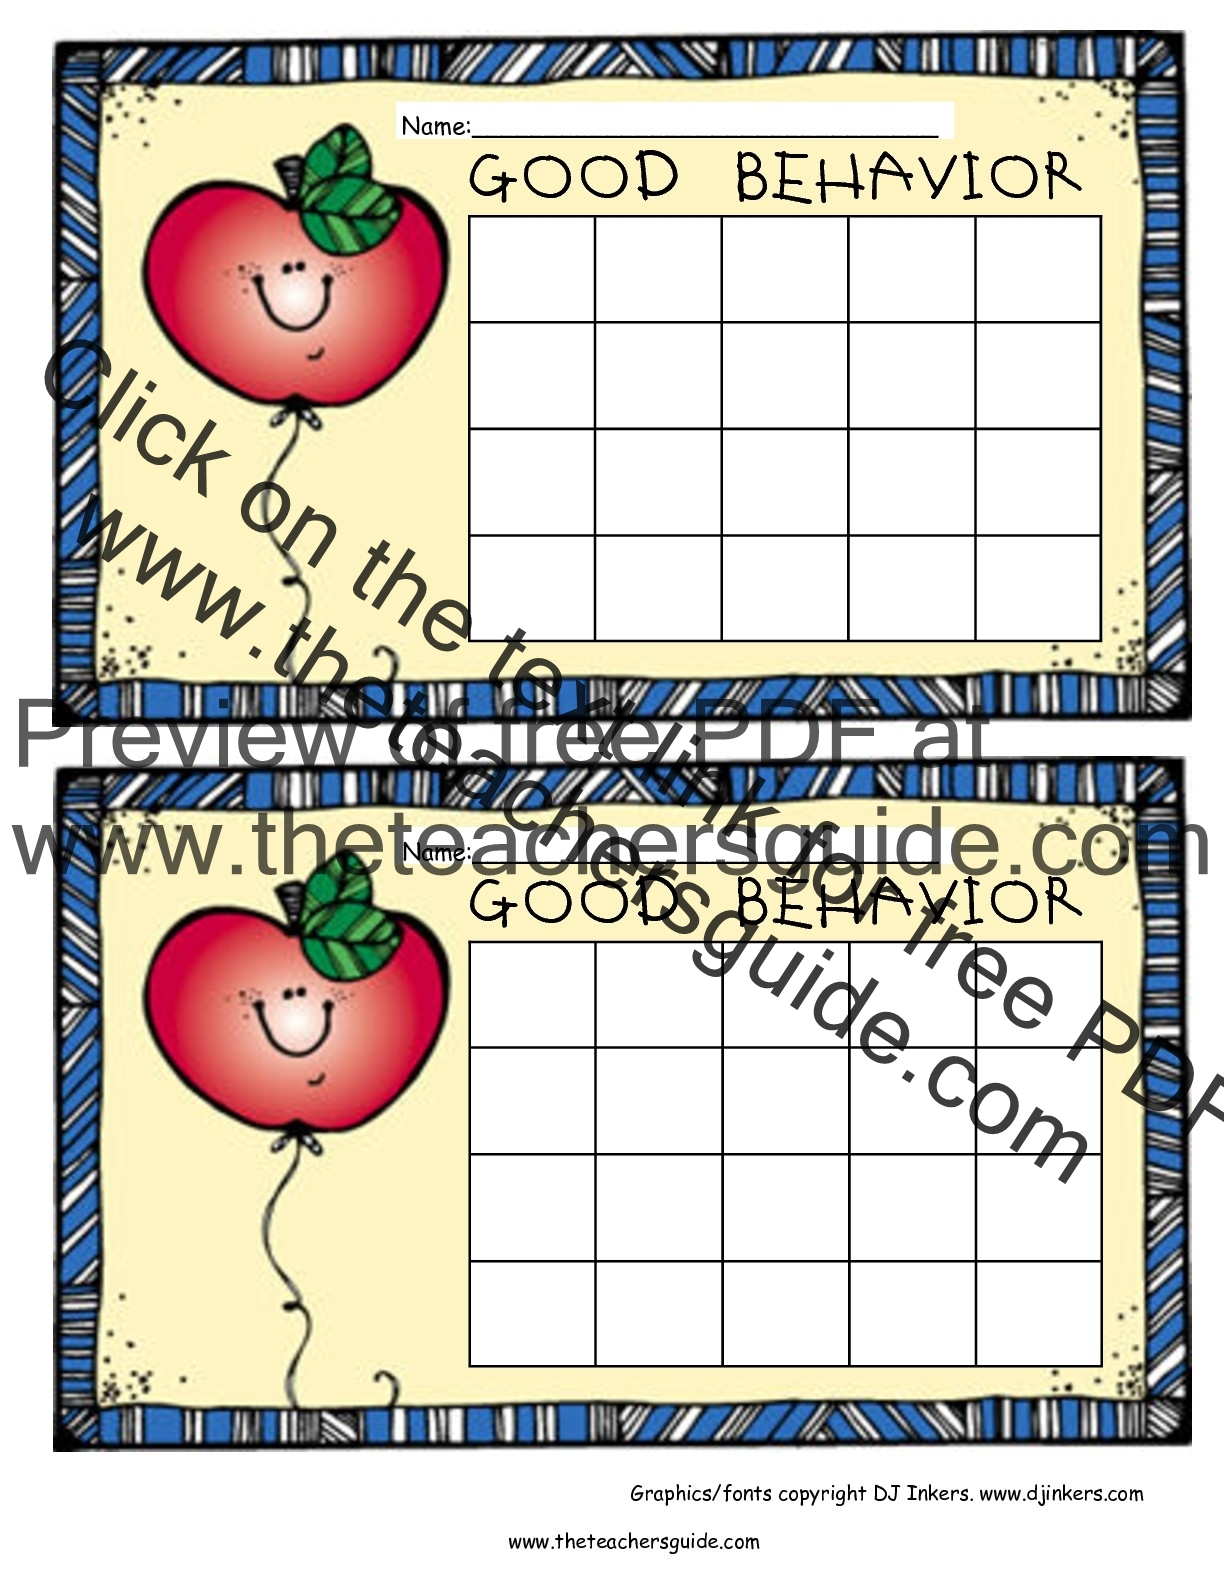 Free Printable Reward and Incentive Charts – Free Reward Charts to Download